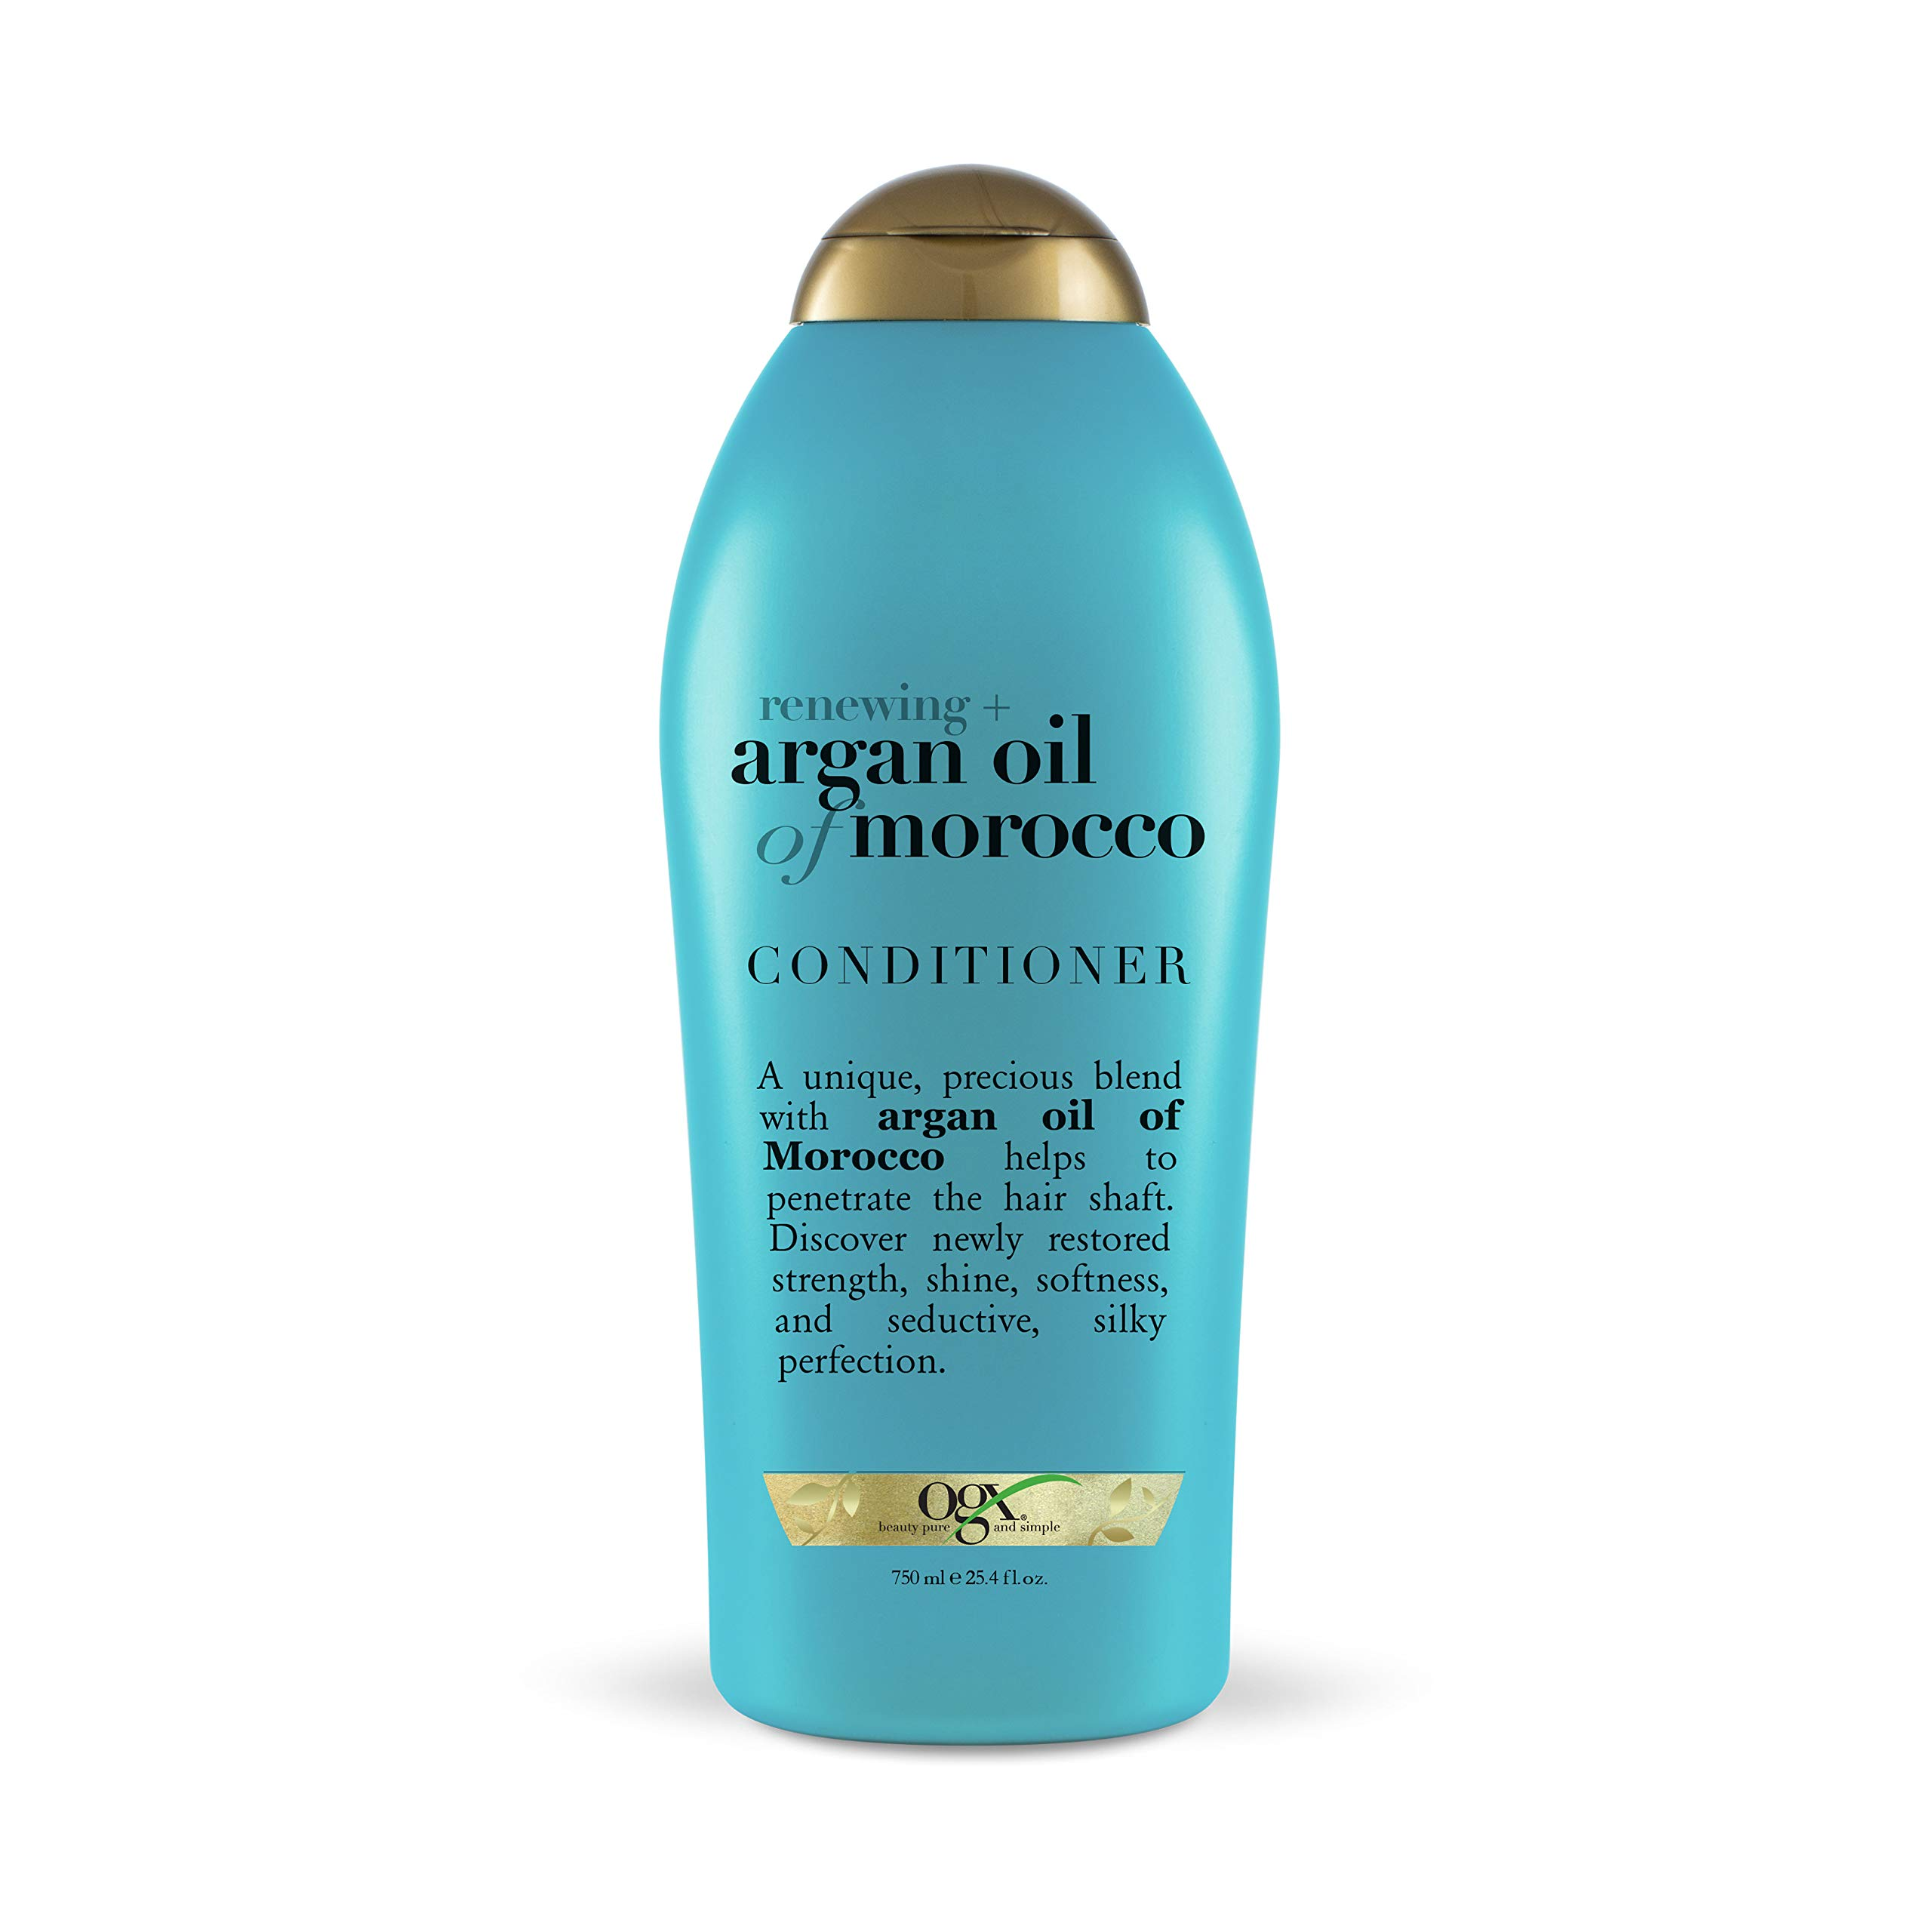 OGX Renewing + Argan Oil of Morocco Conditioner, 25.4 Ounce Salon Size